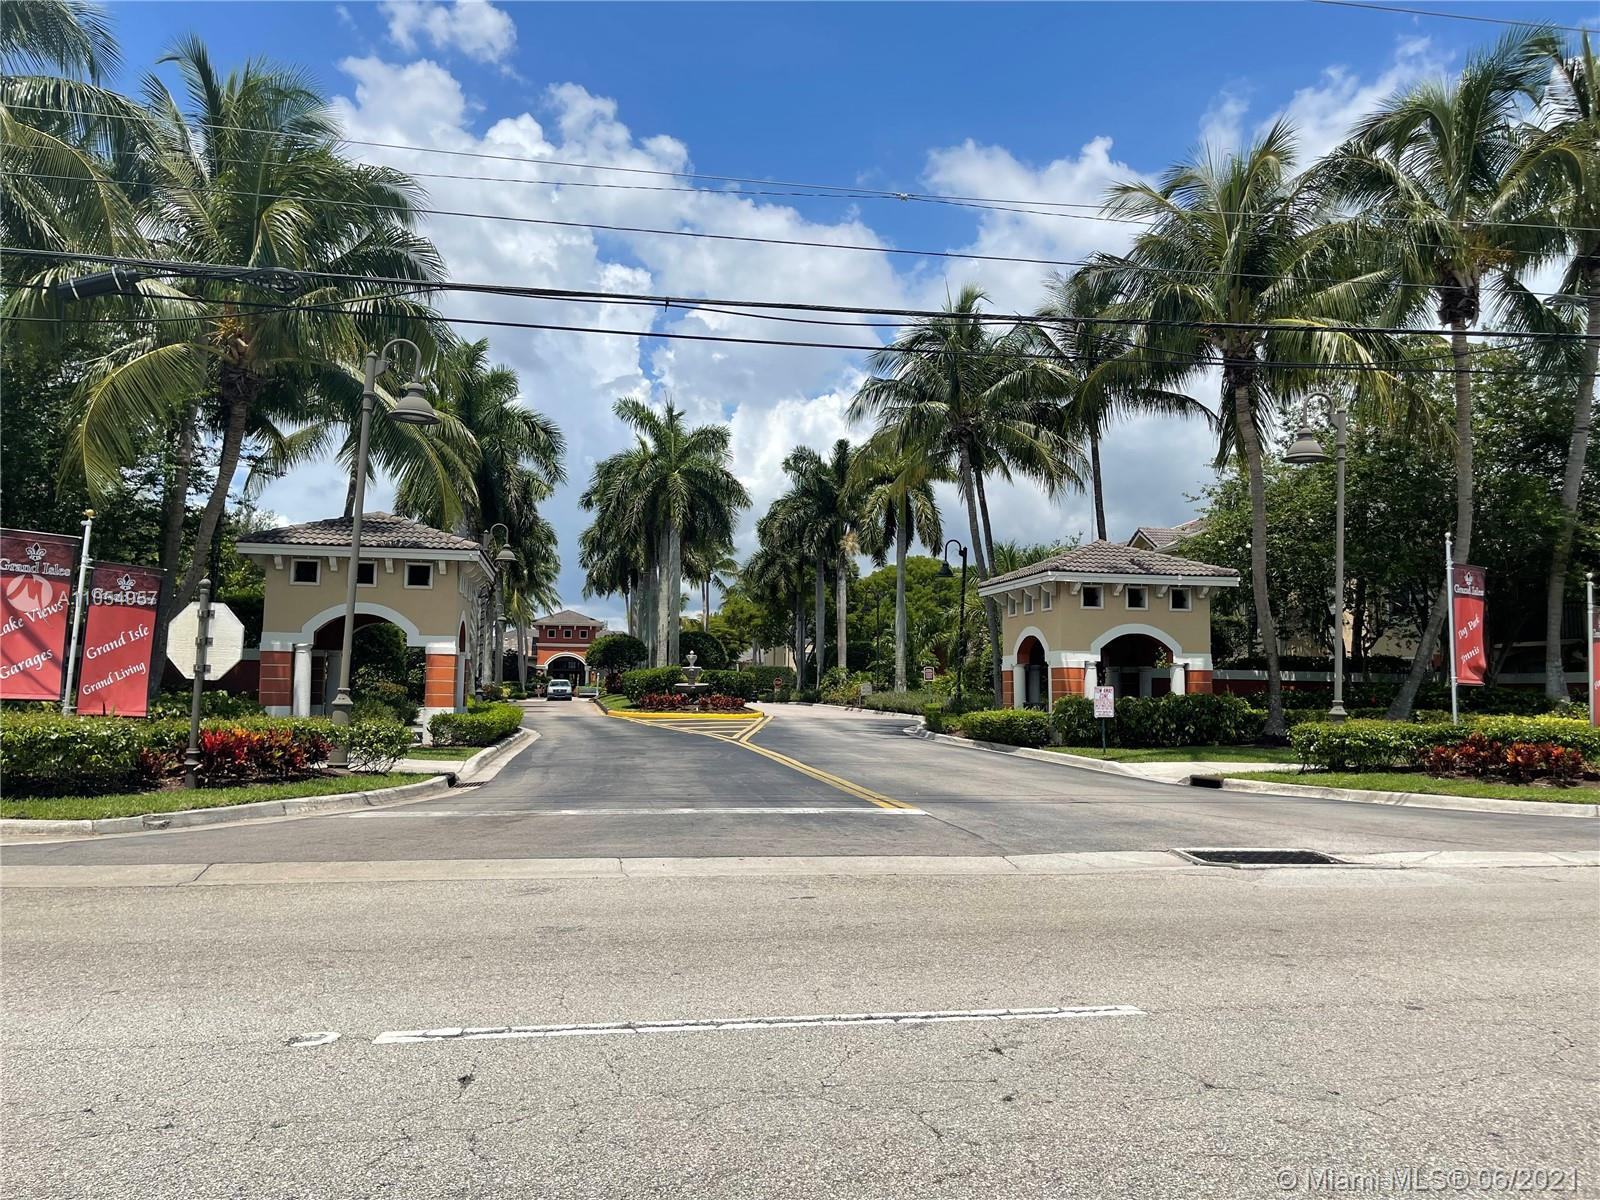 GREAT OPPORTUNITY TO OWN IN THE VERY SOUGHT AFTER GRAND ISLES. Perfect for first-time home buyers an